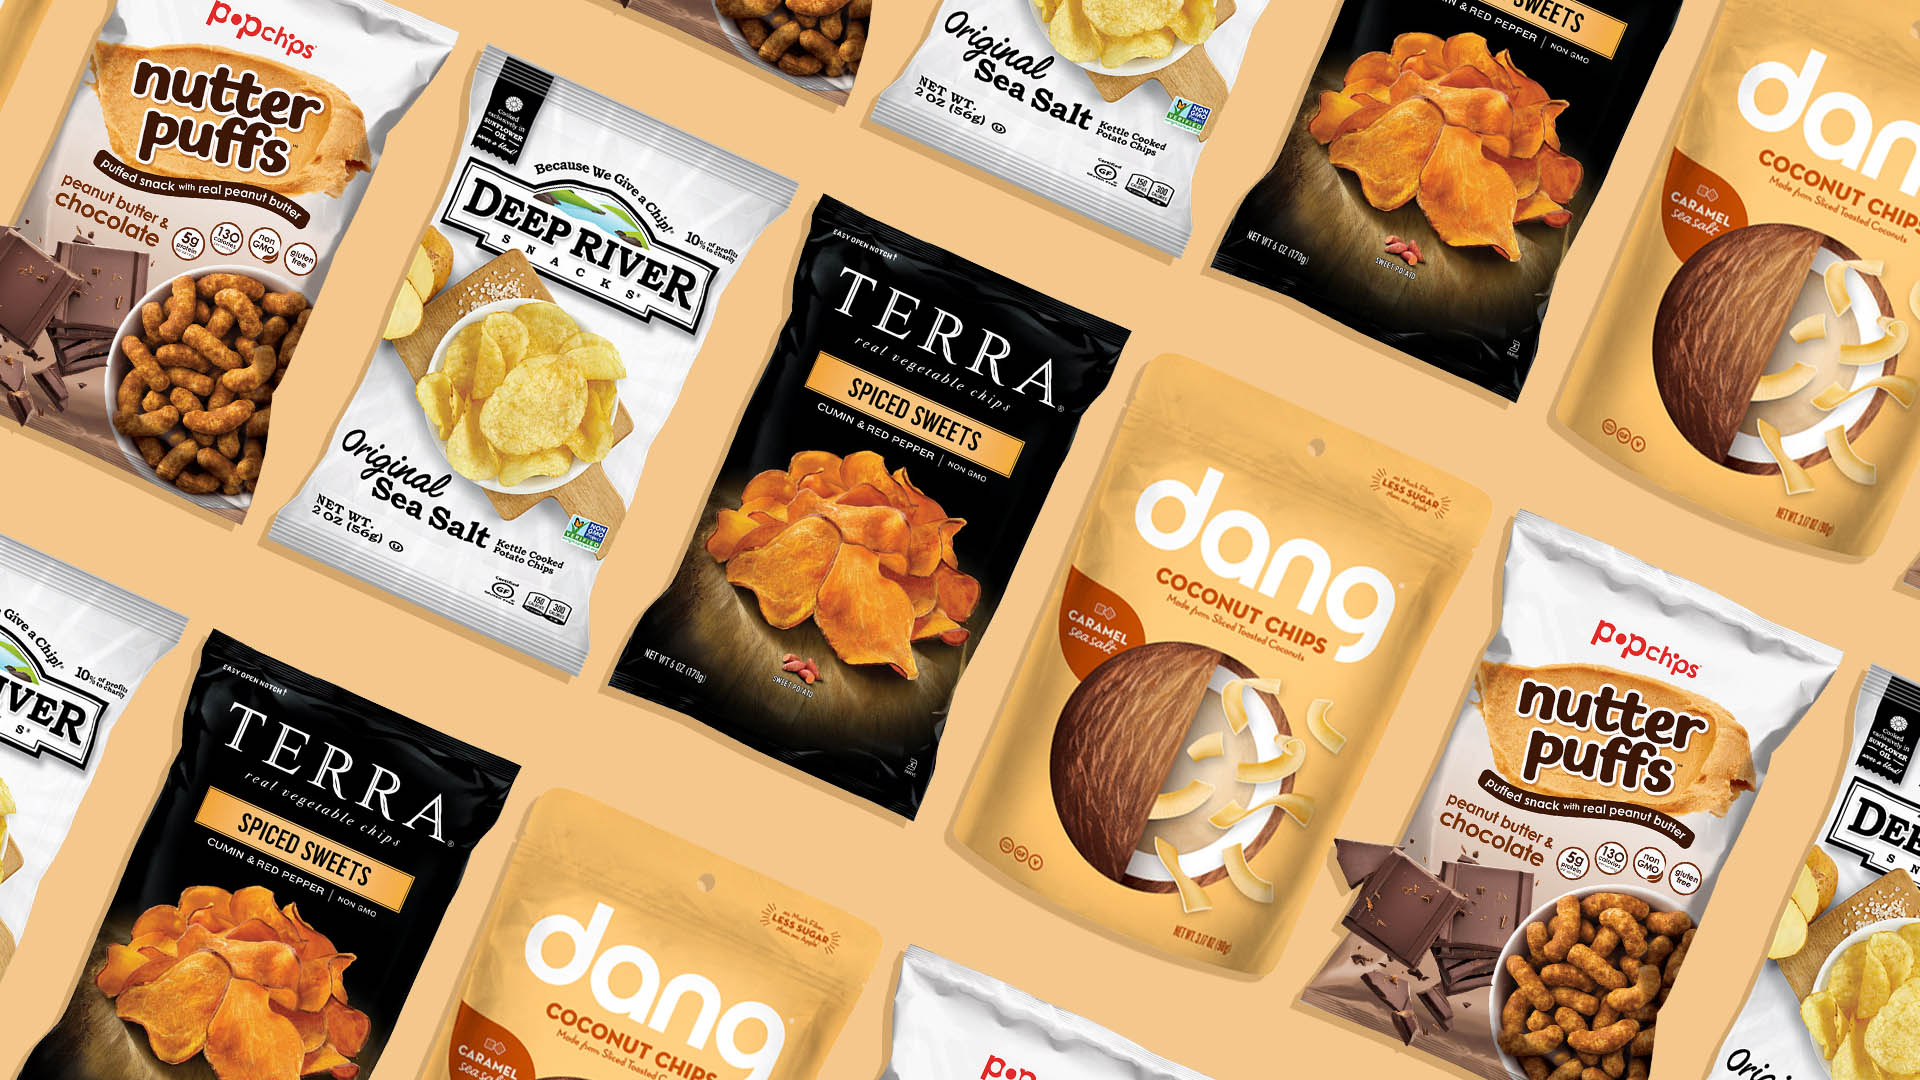 36 Healthiest Brands in the Grocery Store